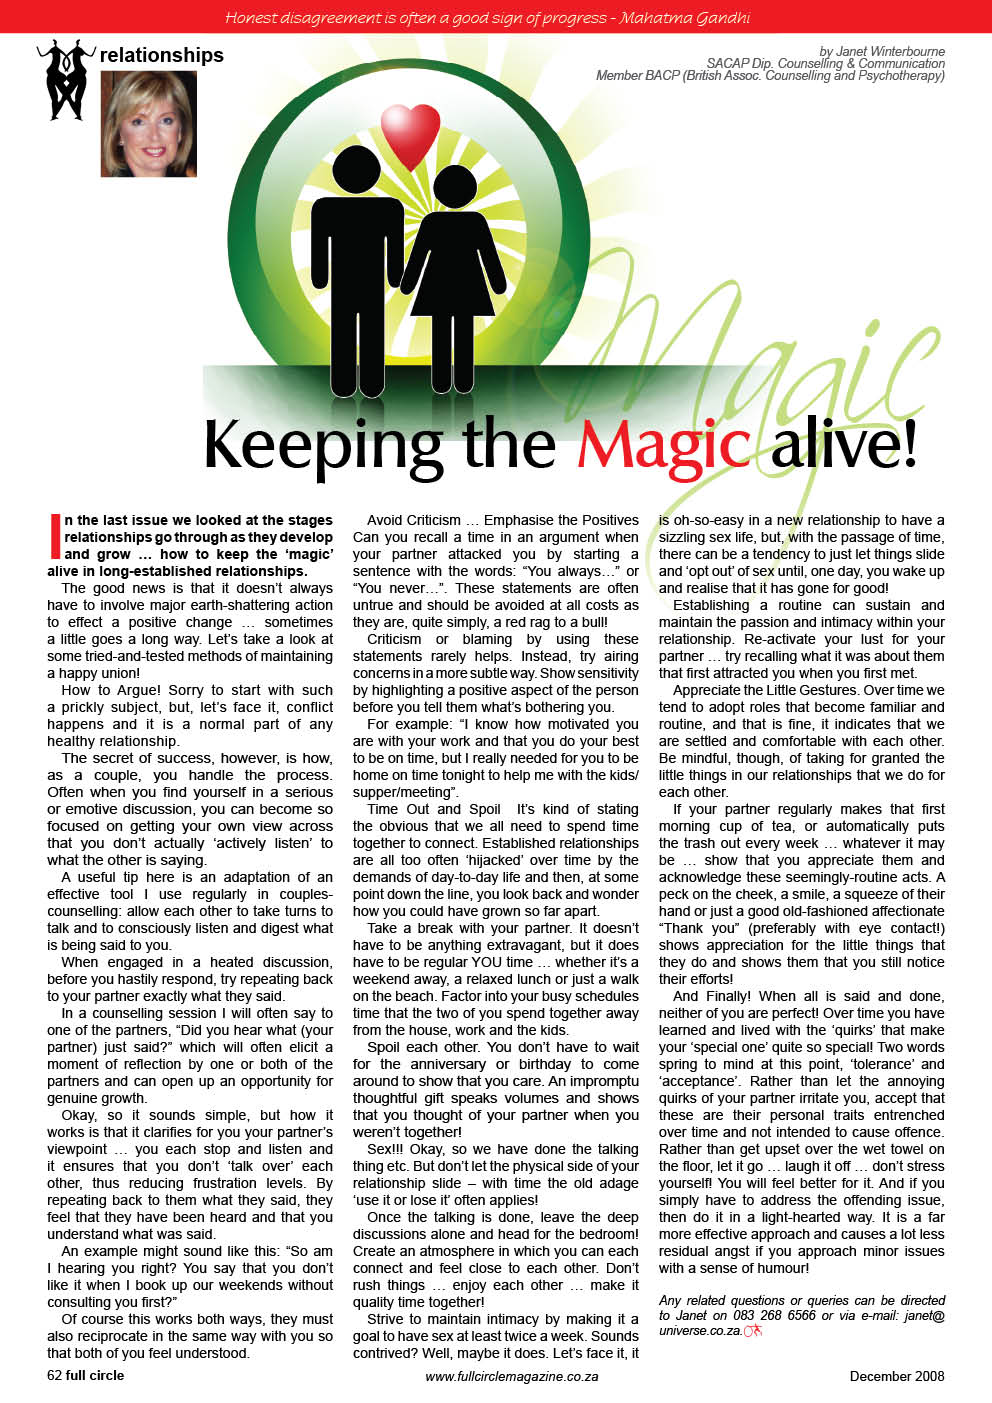 keeping-the-magic-alive Psychologist Cape Town